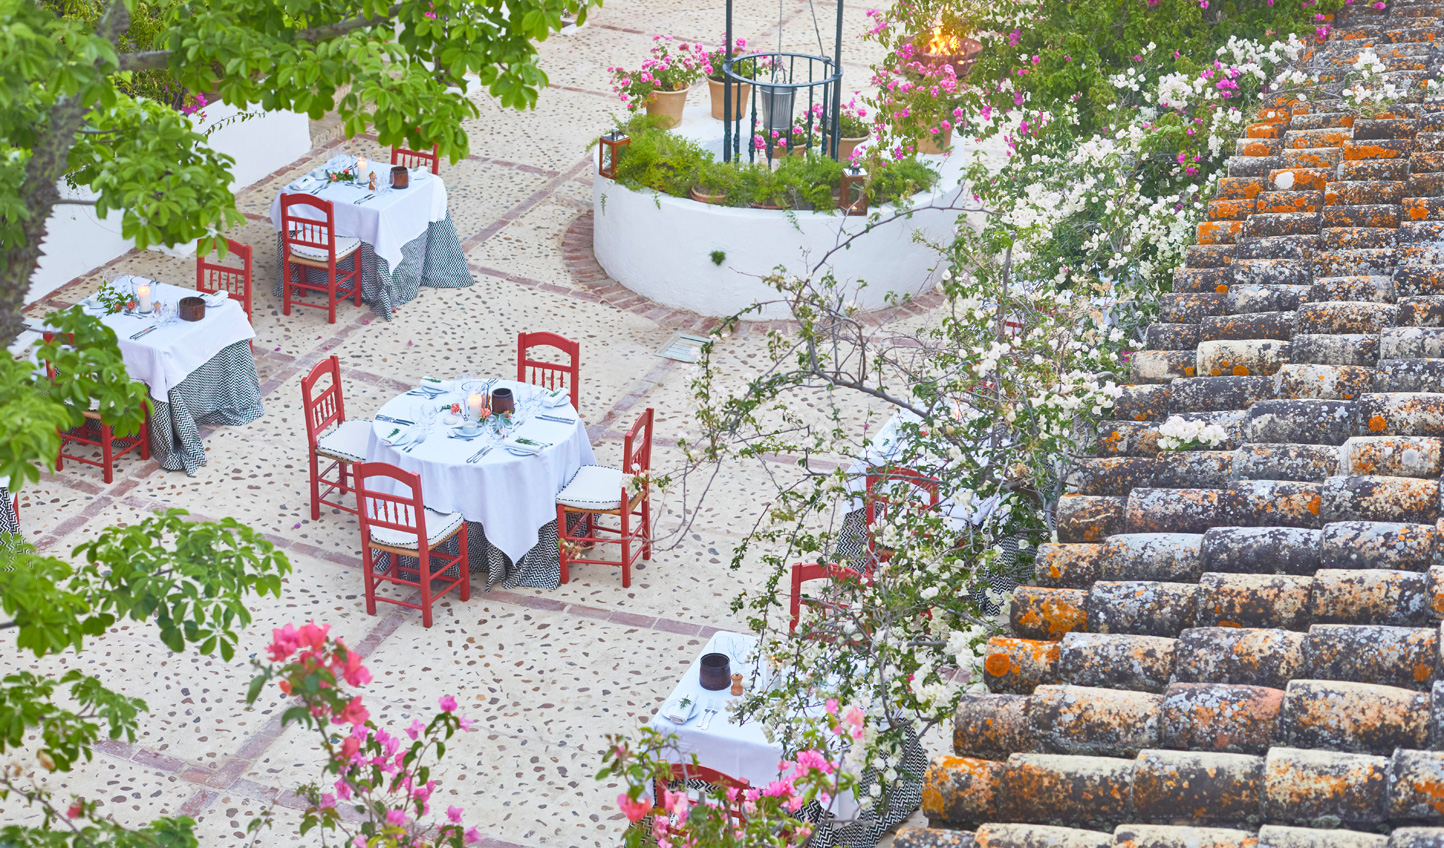 Dine out in the plaza and feel the summer breeze